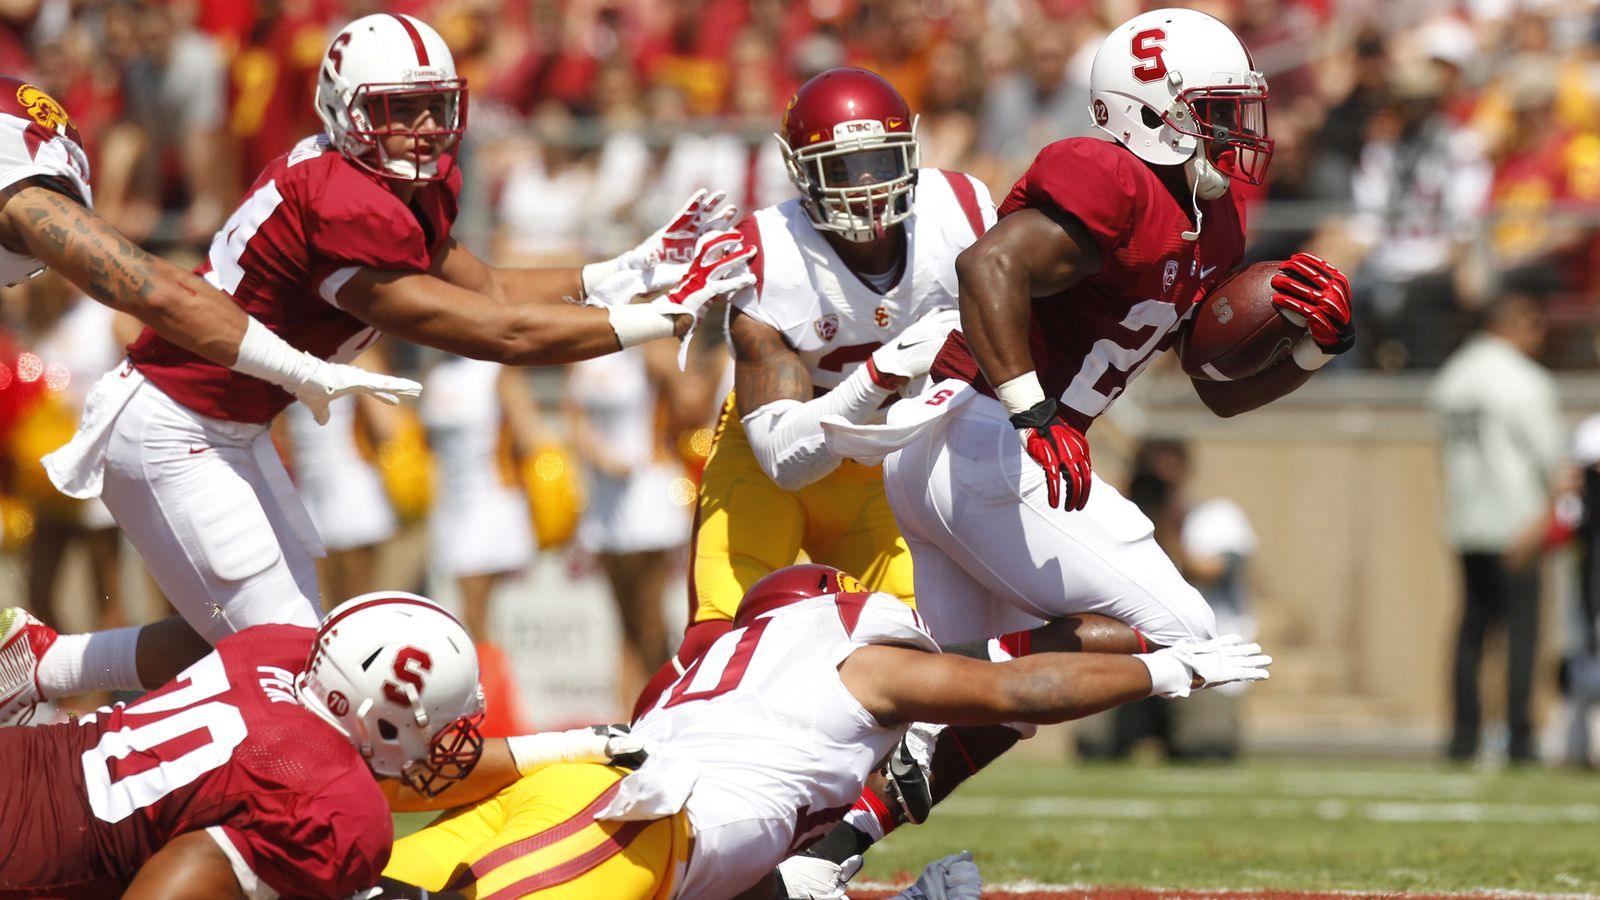 Stanford football has finished up spring ball and is looking ahead to the 2018 season What did we learn about the Cardinal this spring